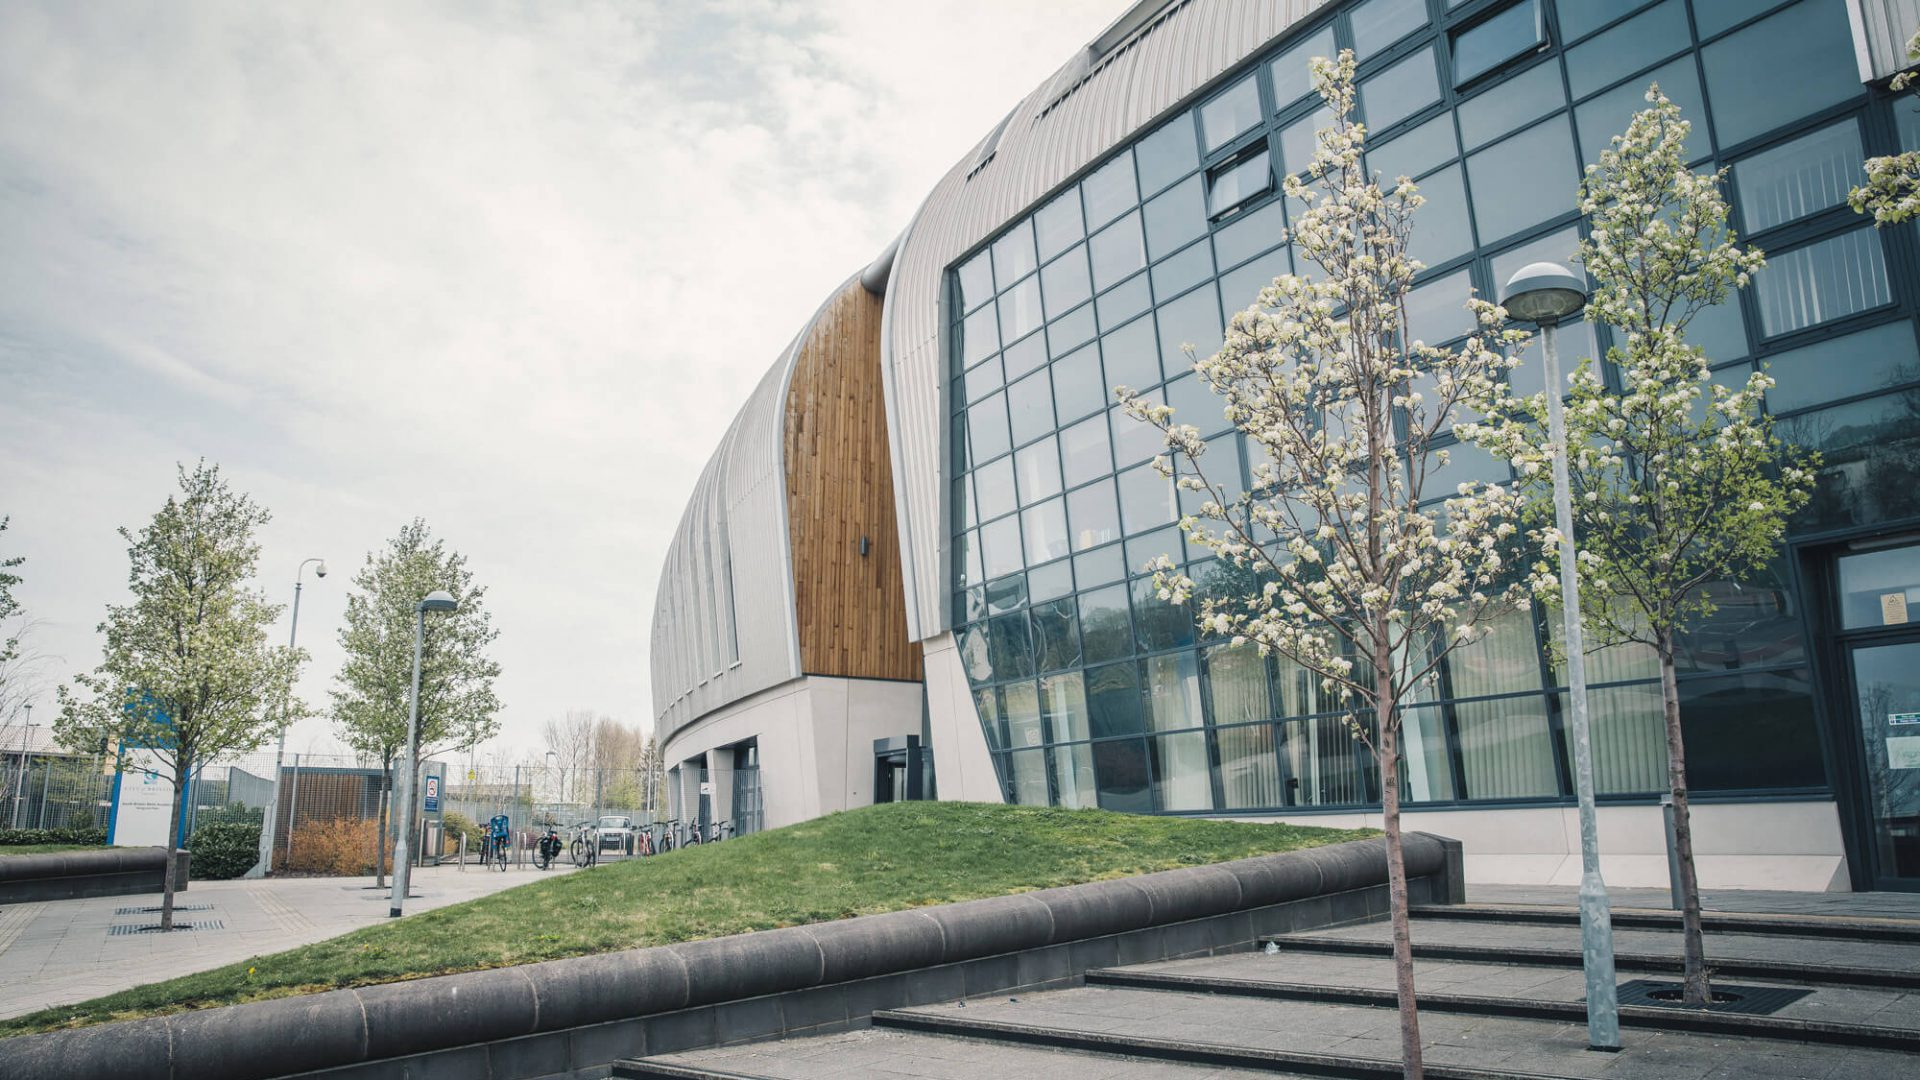 Outside shot of the main building at South Bristol Skills Academy